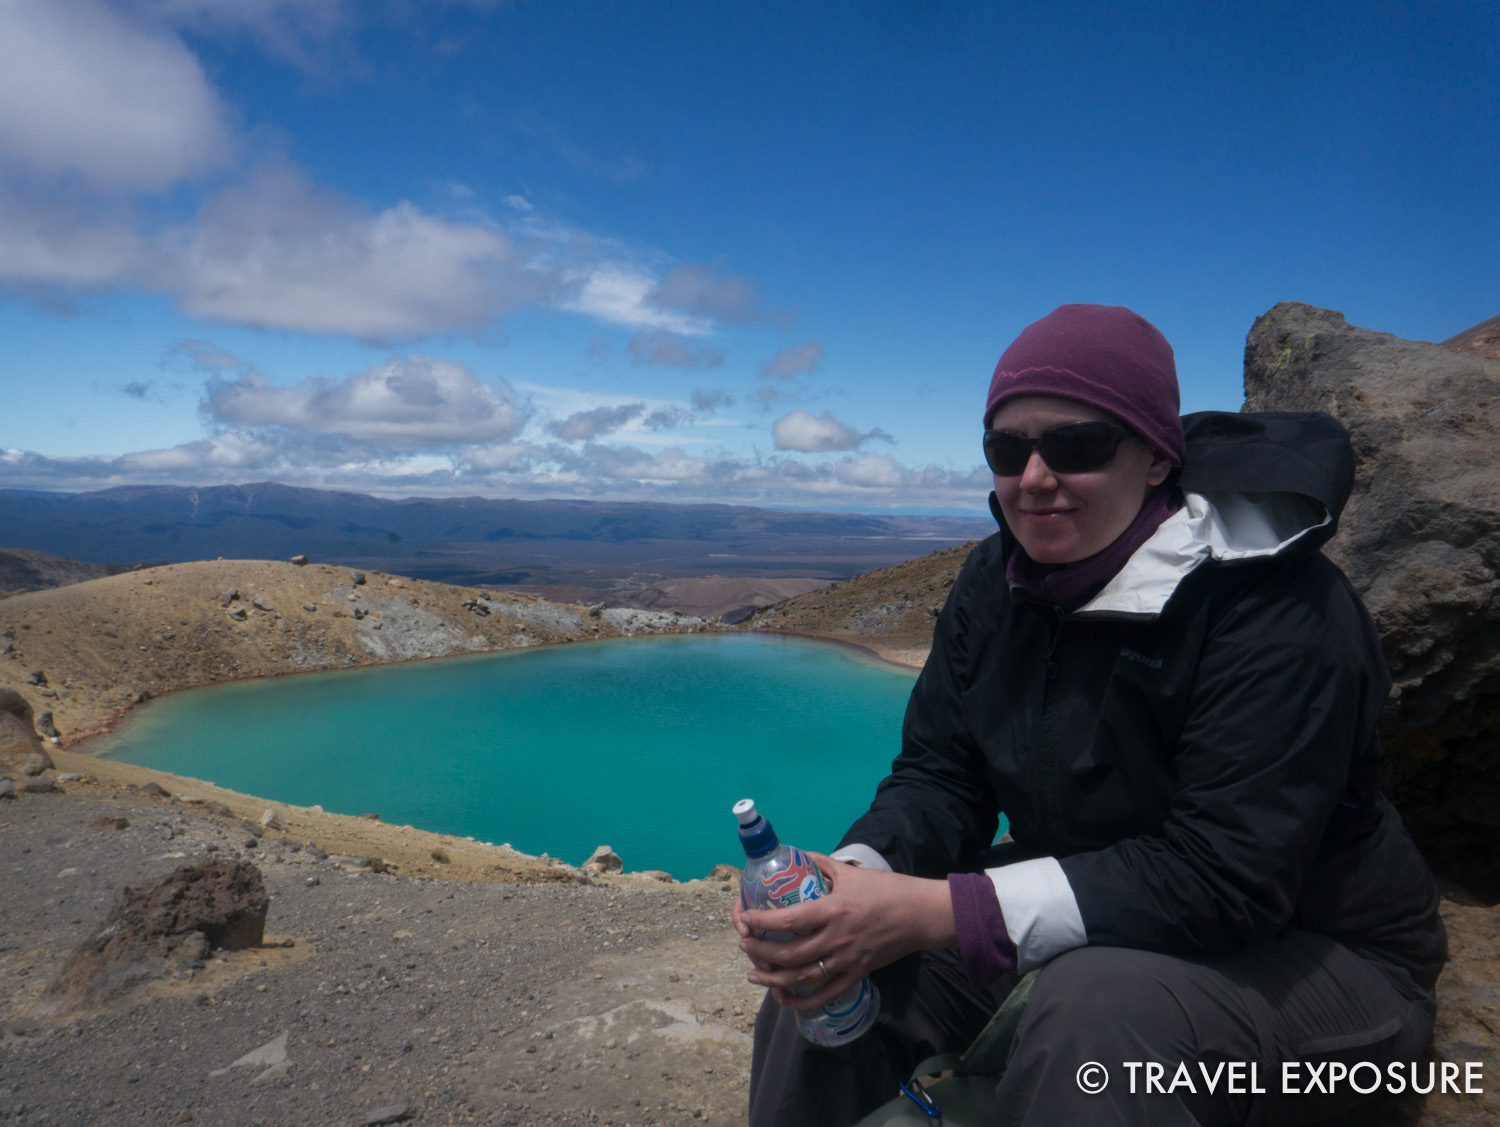 Tongariro Alpine Crossing Hike - smiling but not a happy hiker here